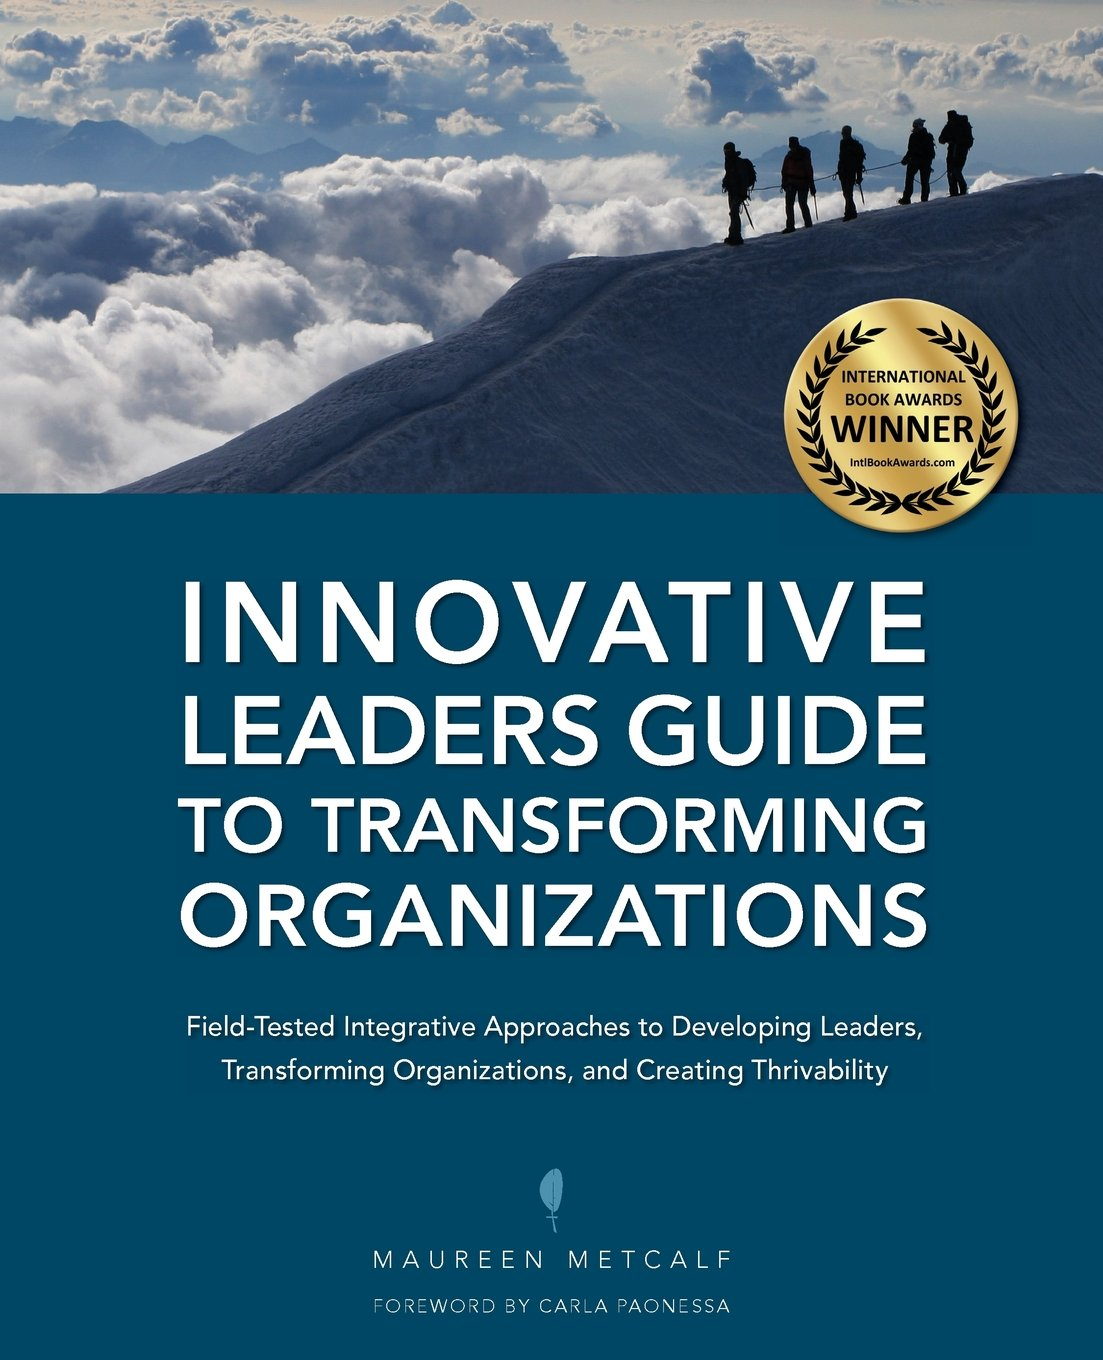 Innovative Leaders Guide To Transforminganizations